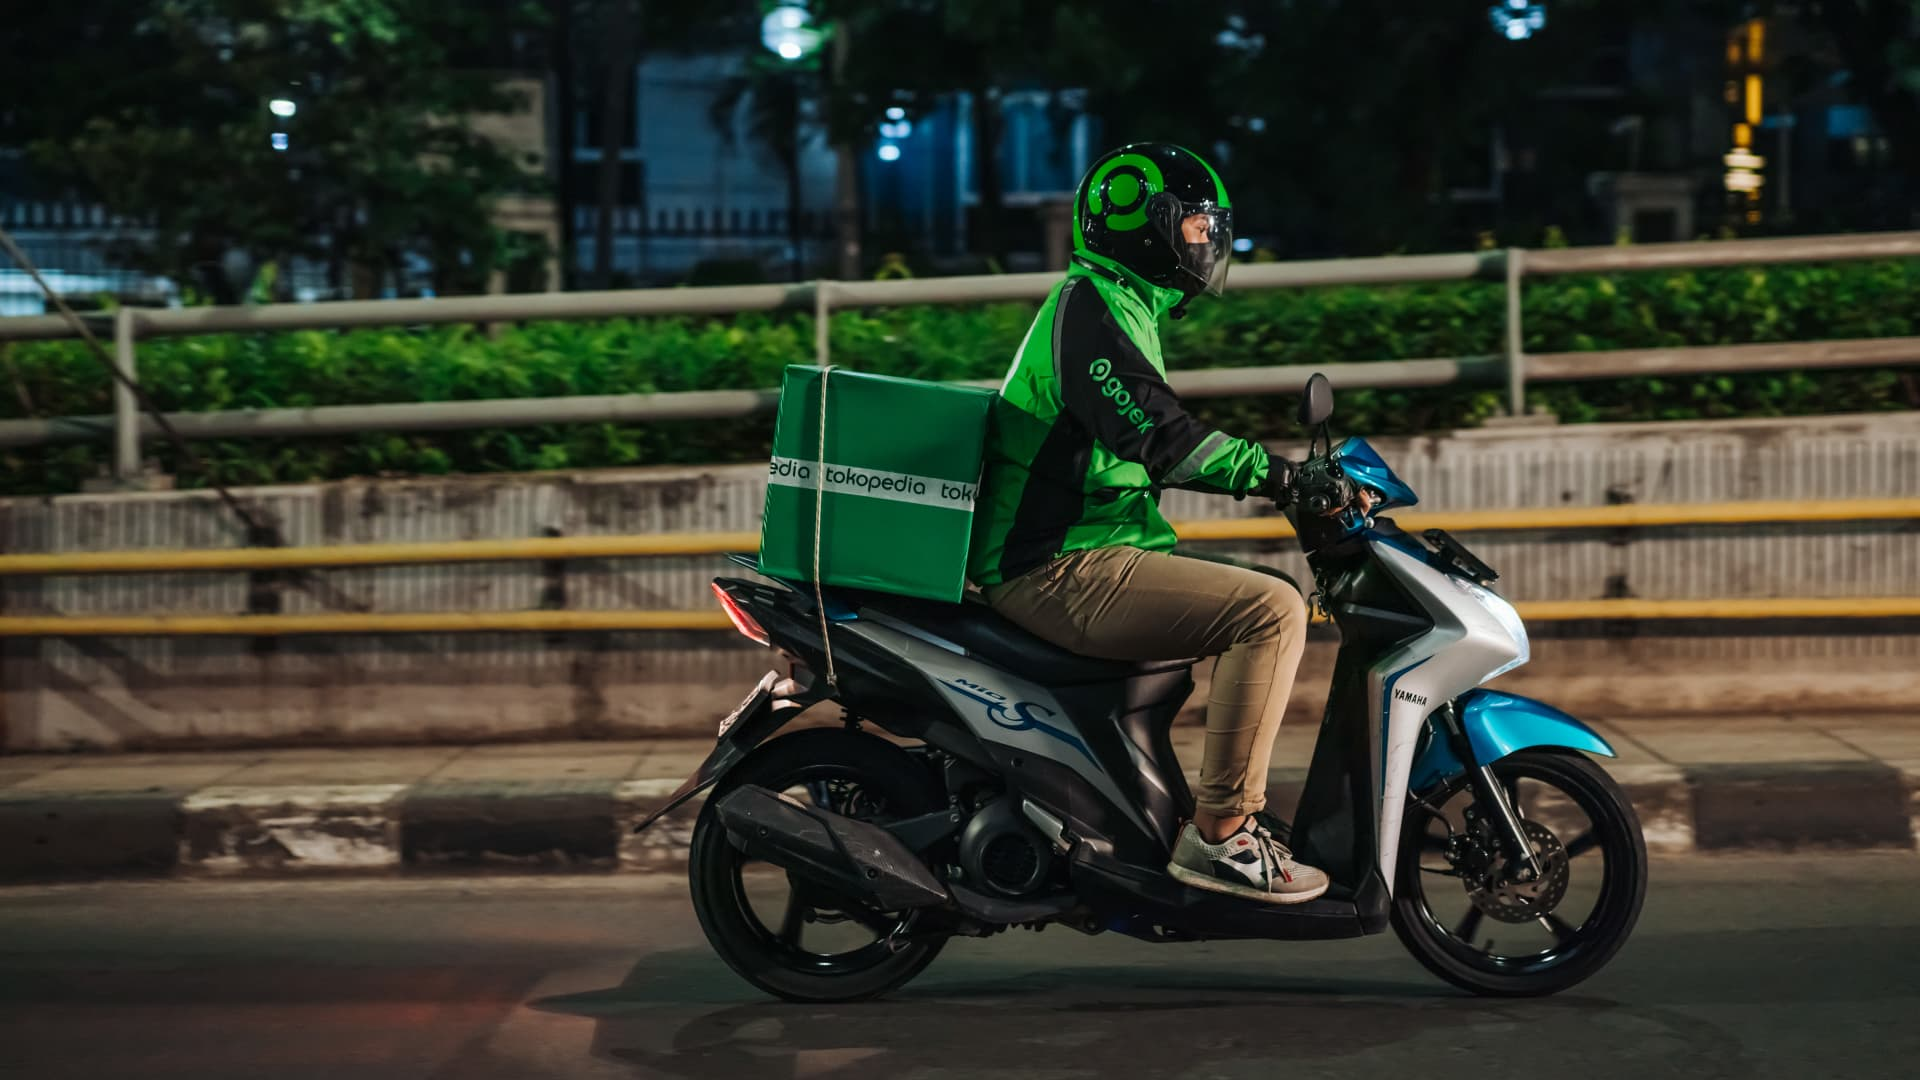 GoTo is an Indonesian technology company formed in a May 2021 merger between ride-hailing giant Gojek and e-commerce platform Tokopedia.